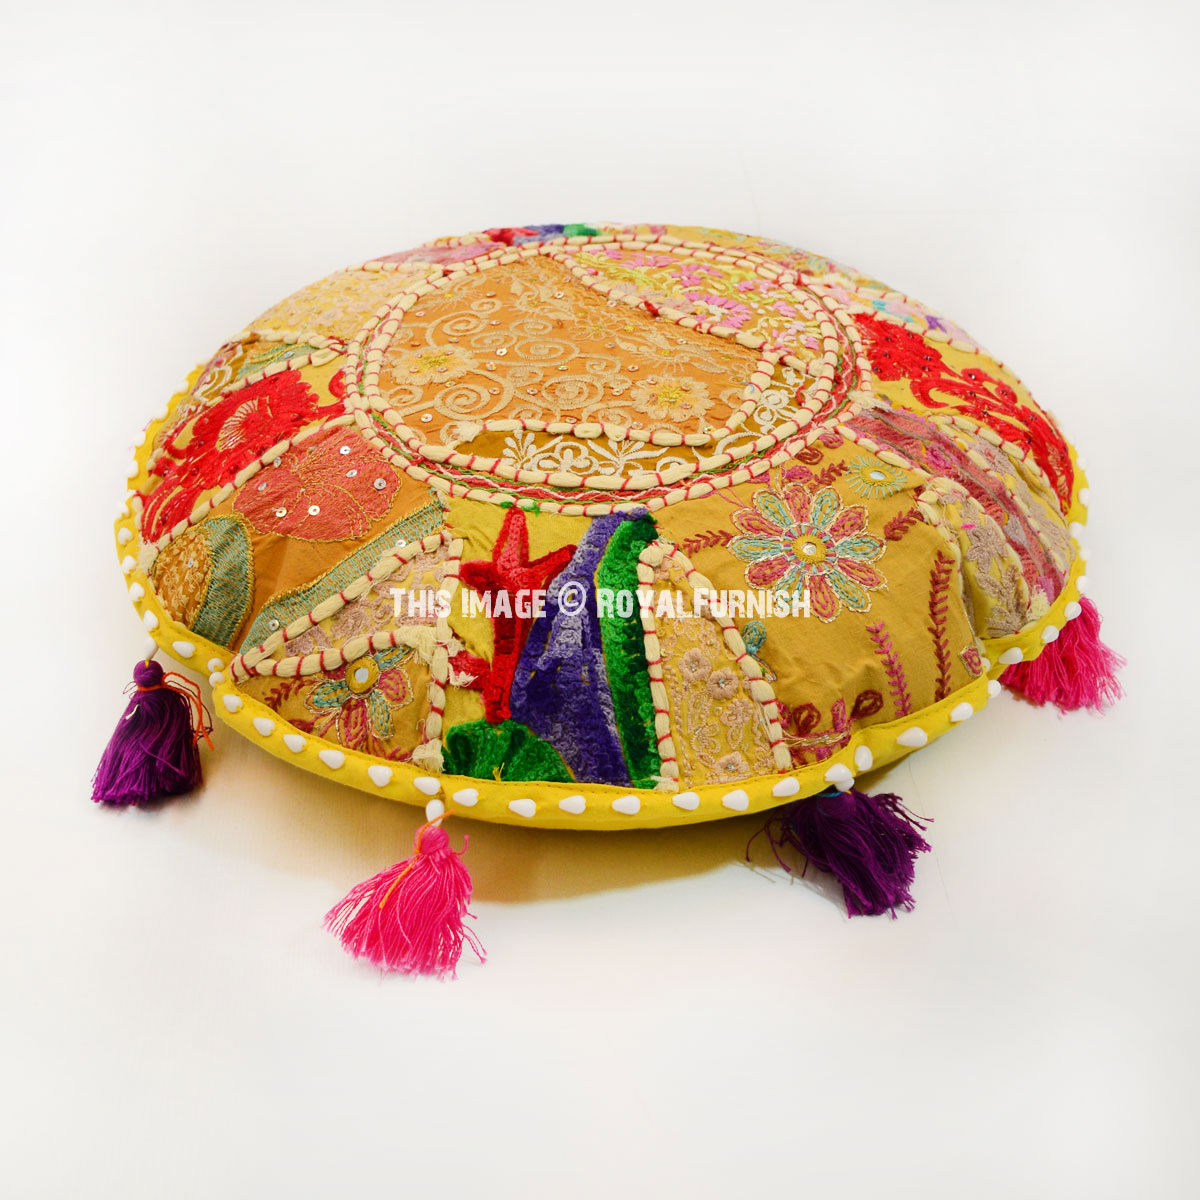 Yellow Handmade Patchwork Round Yoga Meditation Floor ...